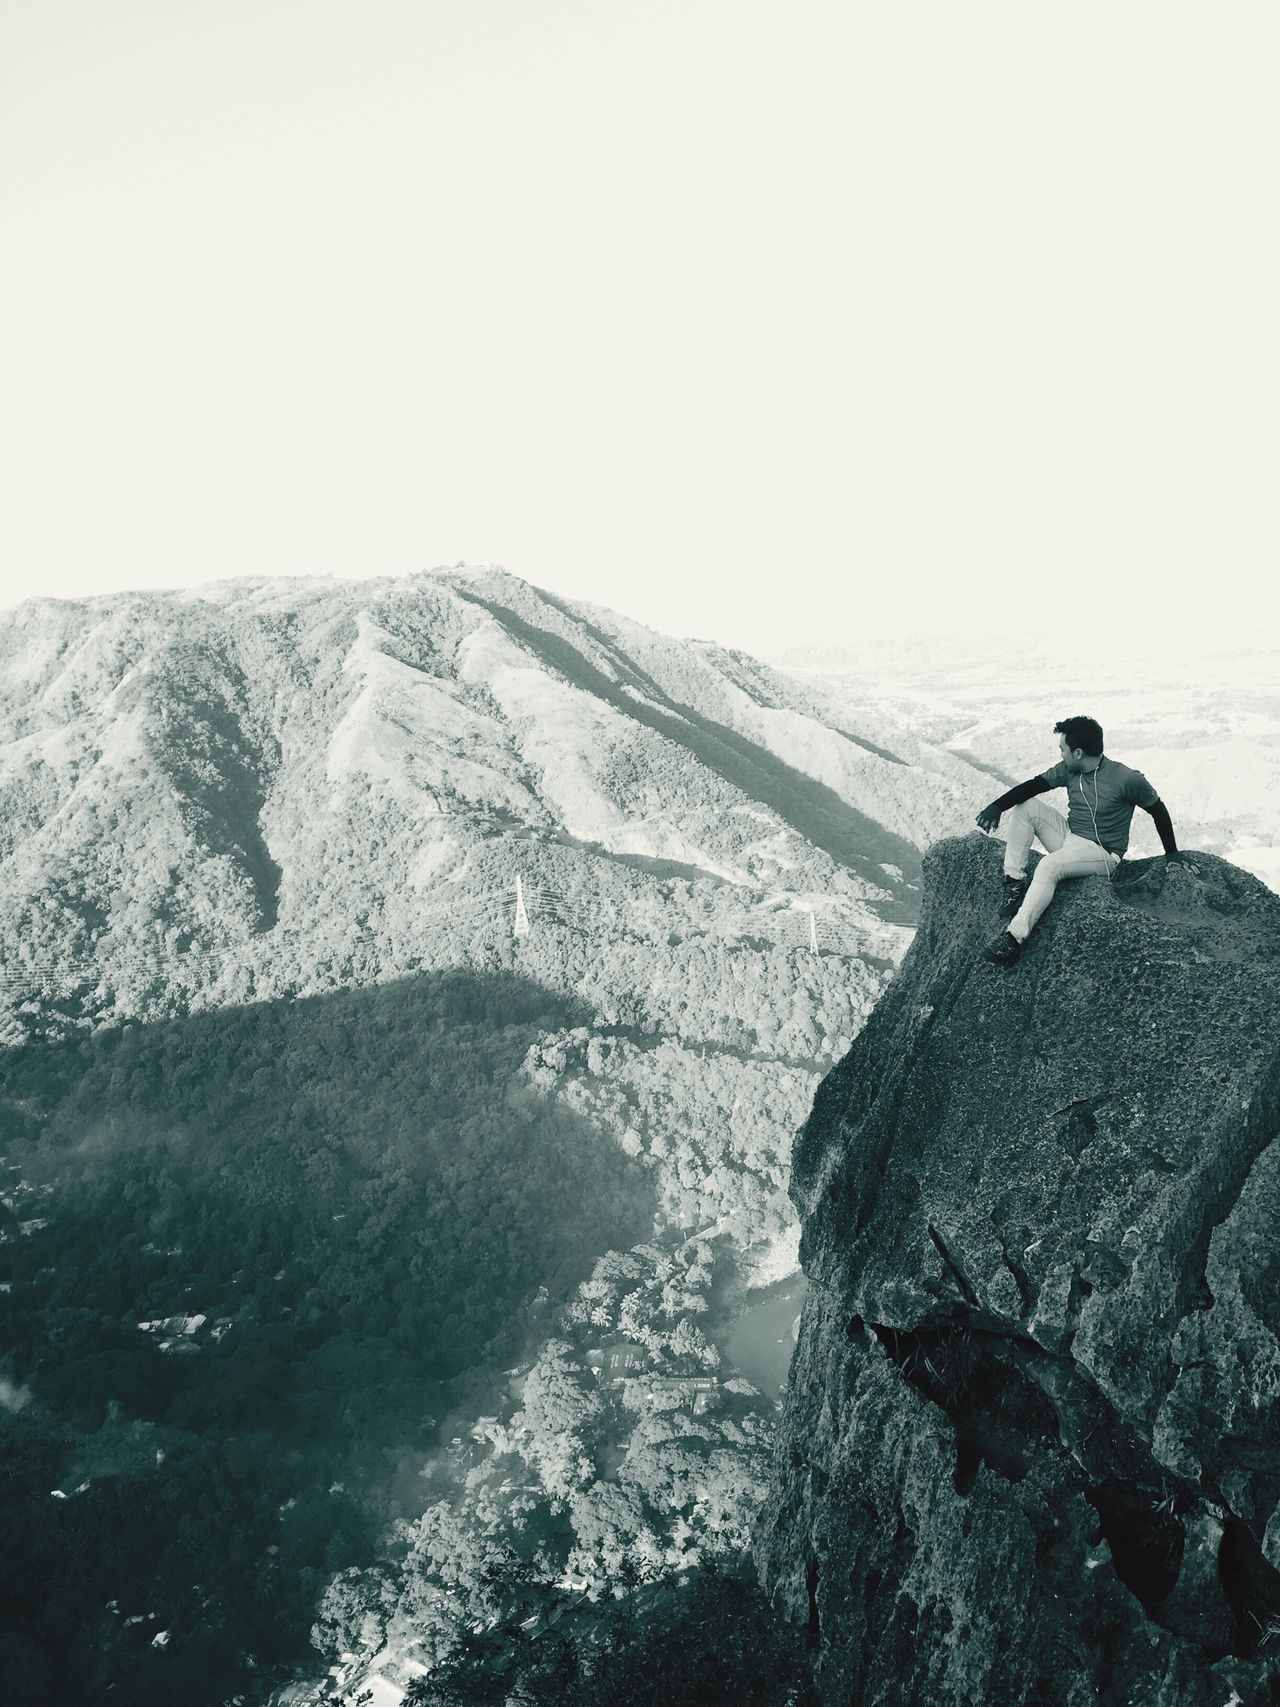 Mountaintops Alone Time Mountainrocks Rockpeak Cliff Edge Live For The Story The Great Outdoors - 2017 EyeEm Awards